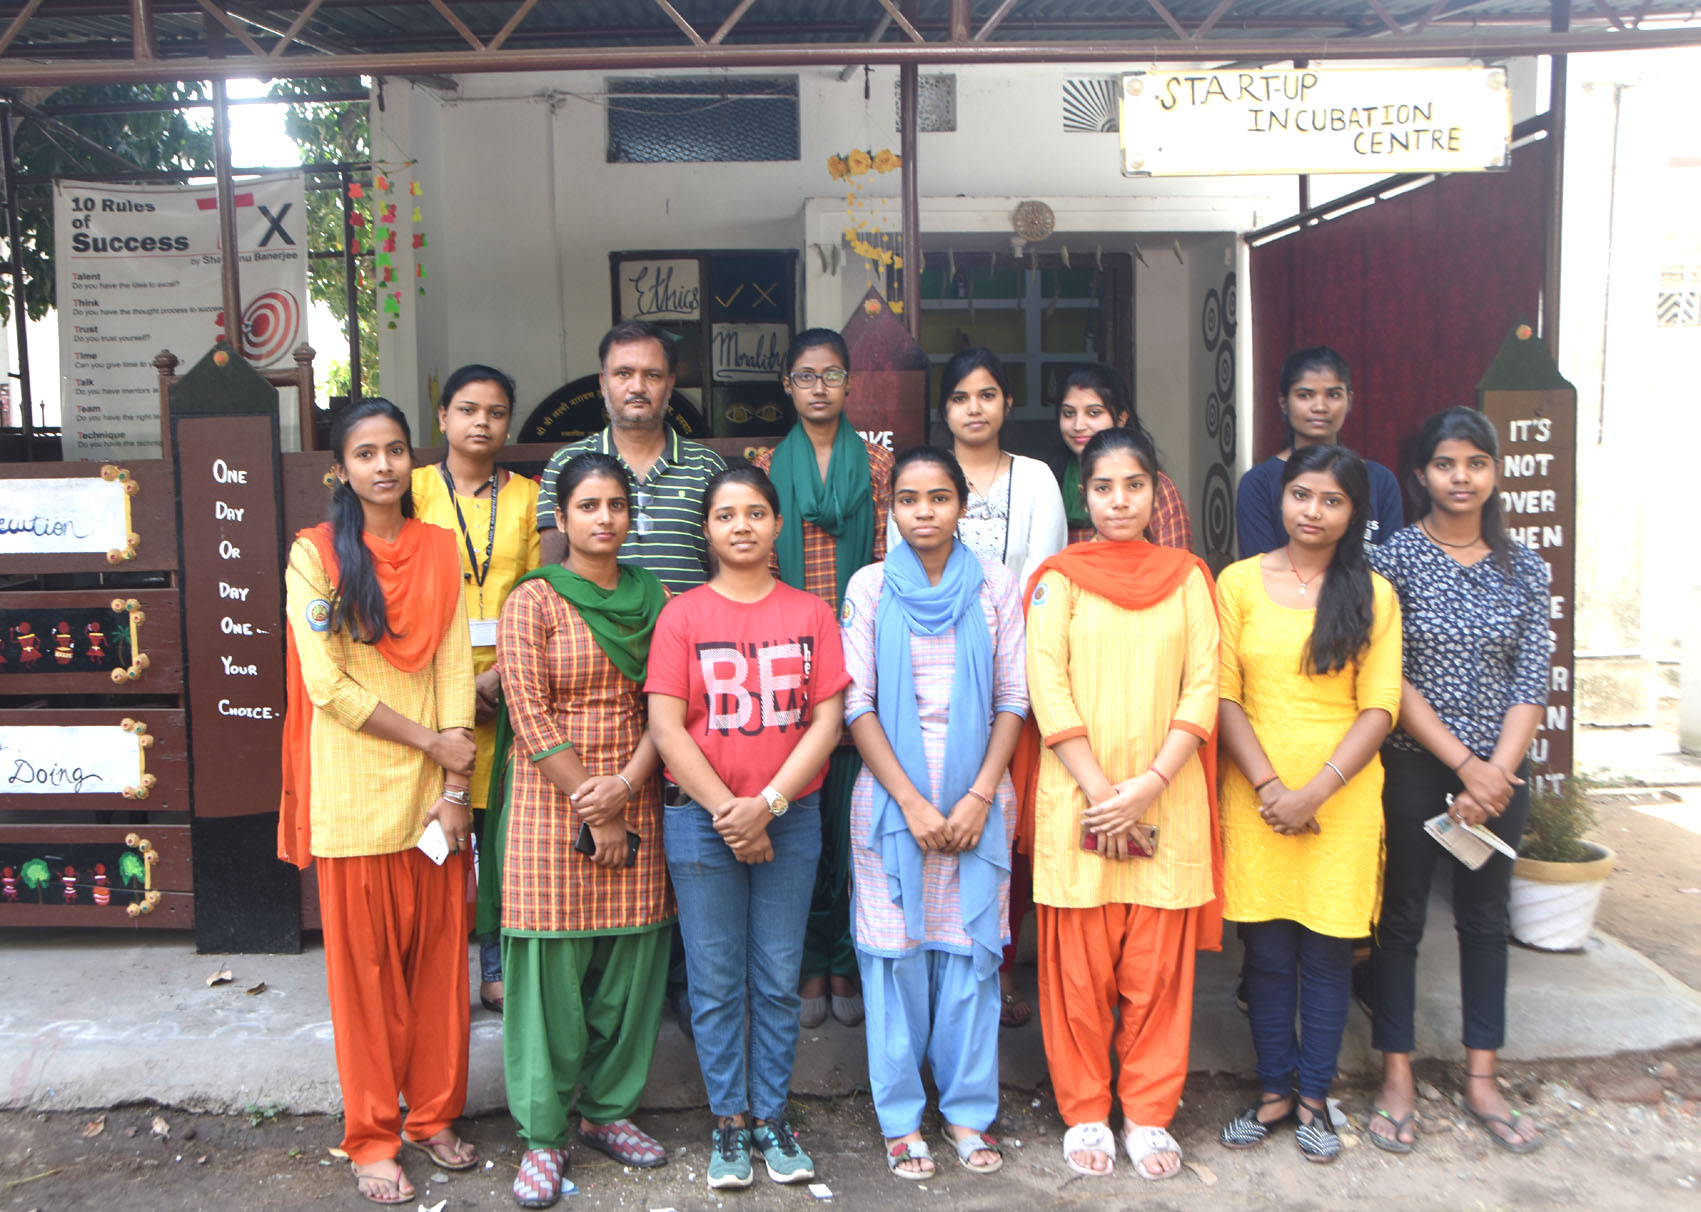 Shantanu Banerjee with his students at the Centre of Innovation, Incubation and Entrepreneurship Development